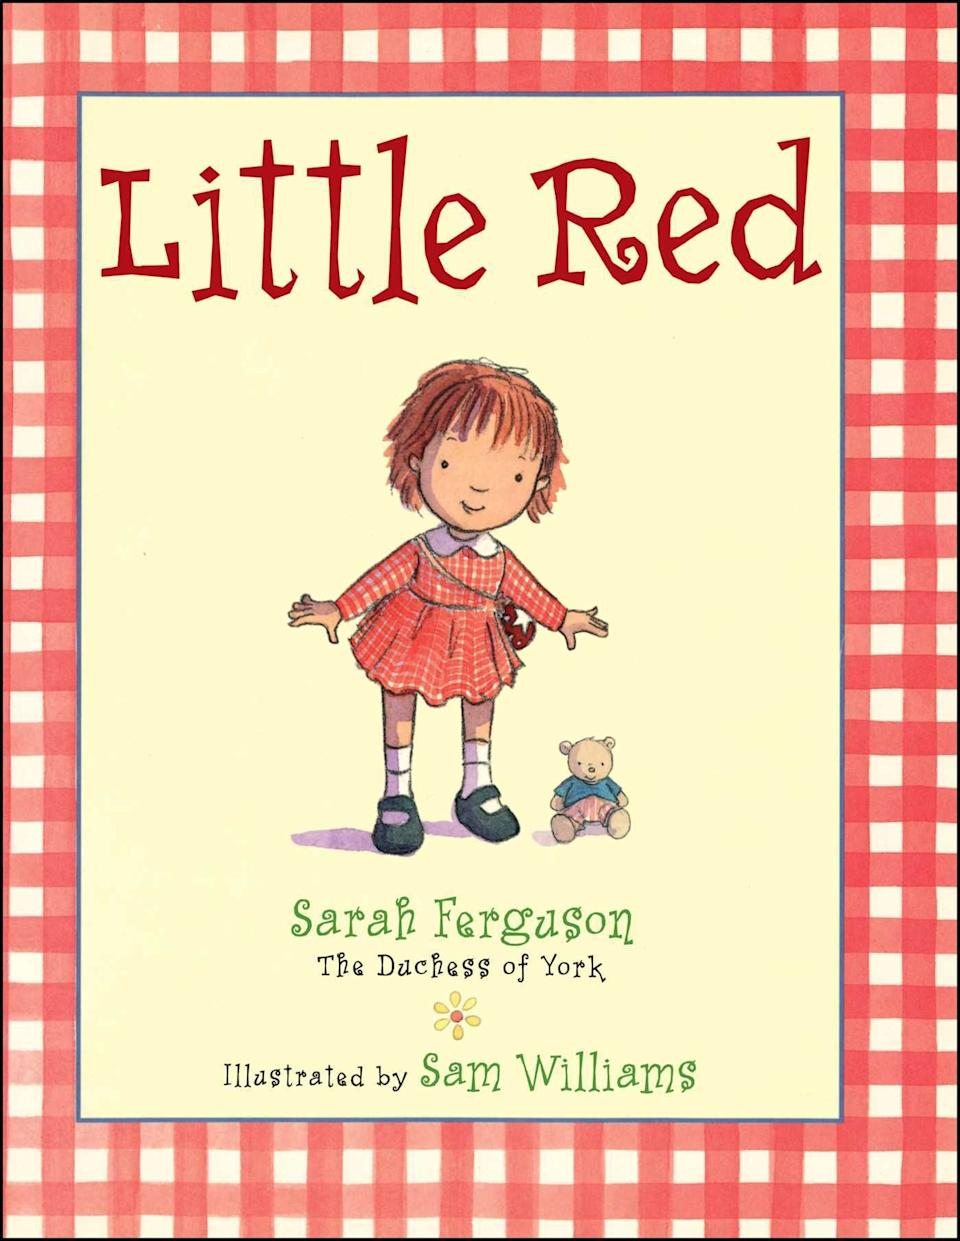 """Sarah Ferguson, Duchess of York, has written several children's books, including her <a href=""""https://www.amazon.com/Little-Sarah-Ferguson-Duchess-York/dp/1481494716"""" target=""""_blank"""" rel=""""noopener noreferrer"""">""""Little Red""""</a> series. Illustrated by Sam Williams, the books follow a redheaded rag doll and her adventures with friends."""